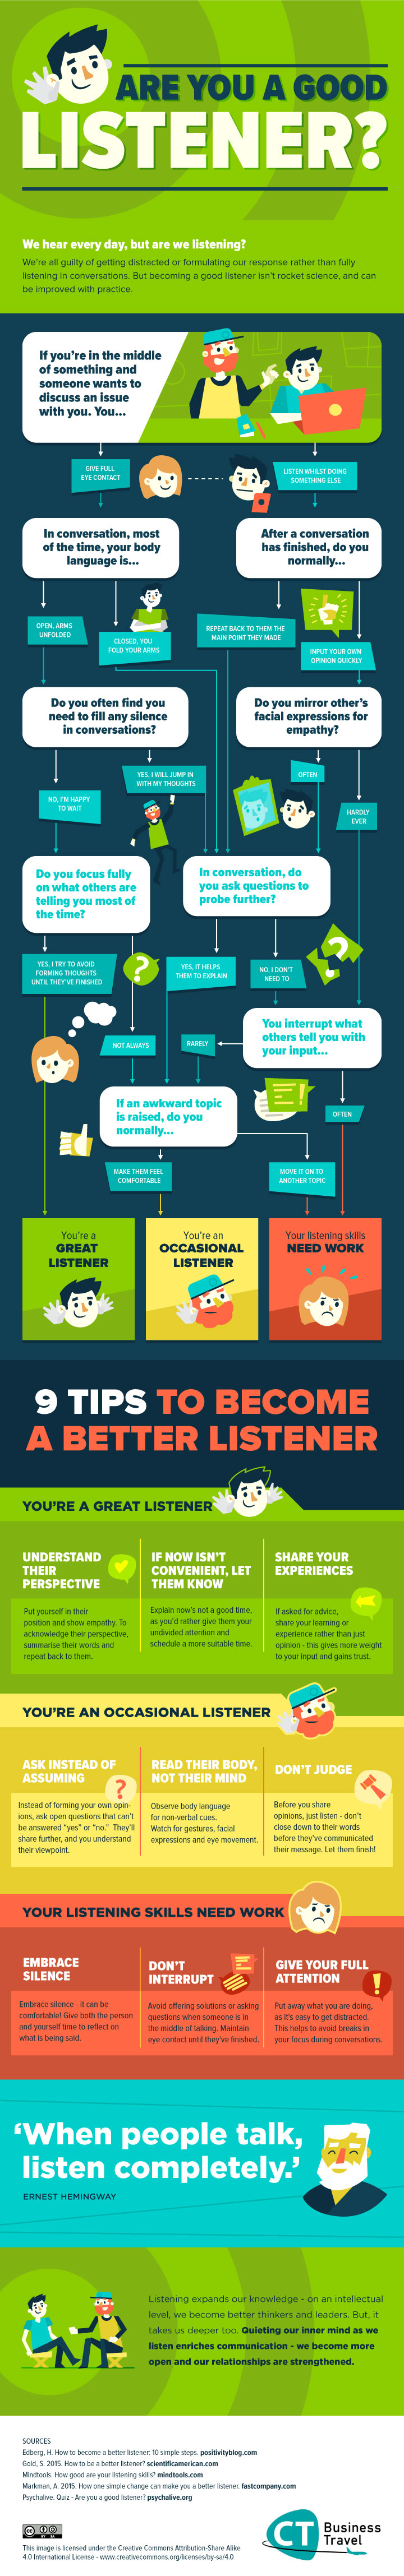 Are You a Good Listener